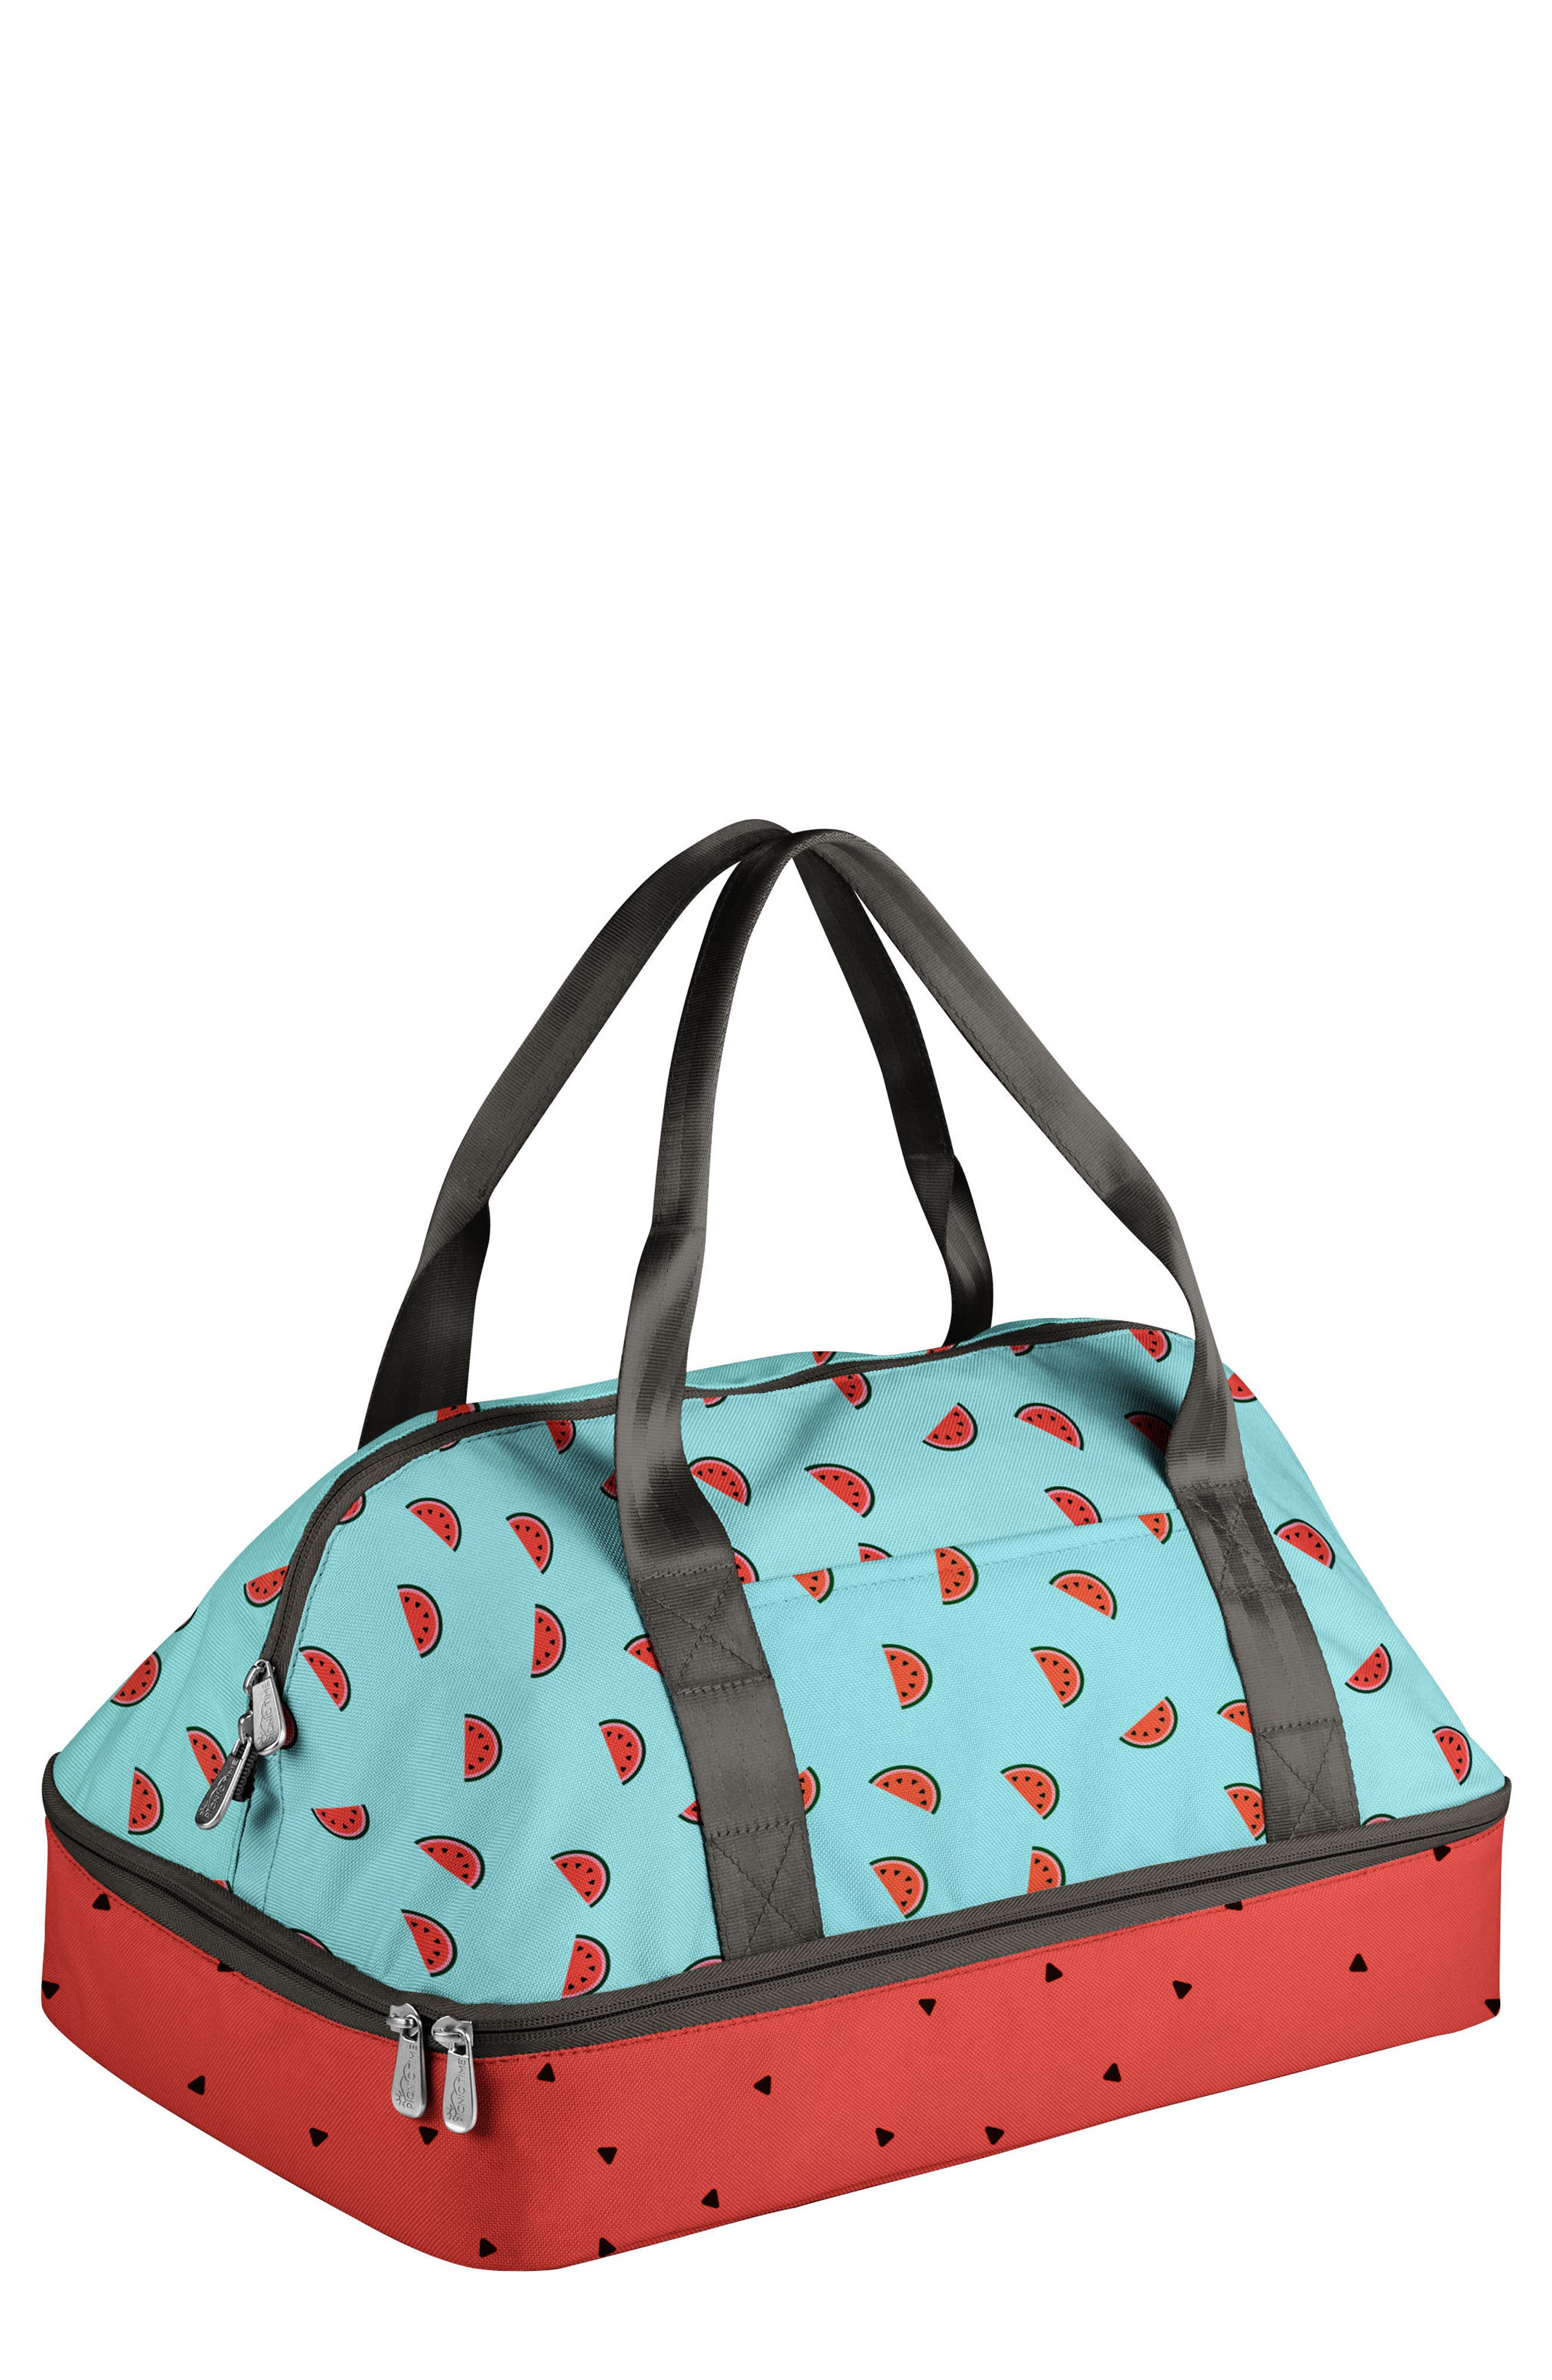 'Potluck' Casserole Tote,                         Main,                         color, BLUE WATERMELON